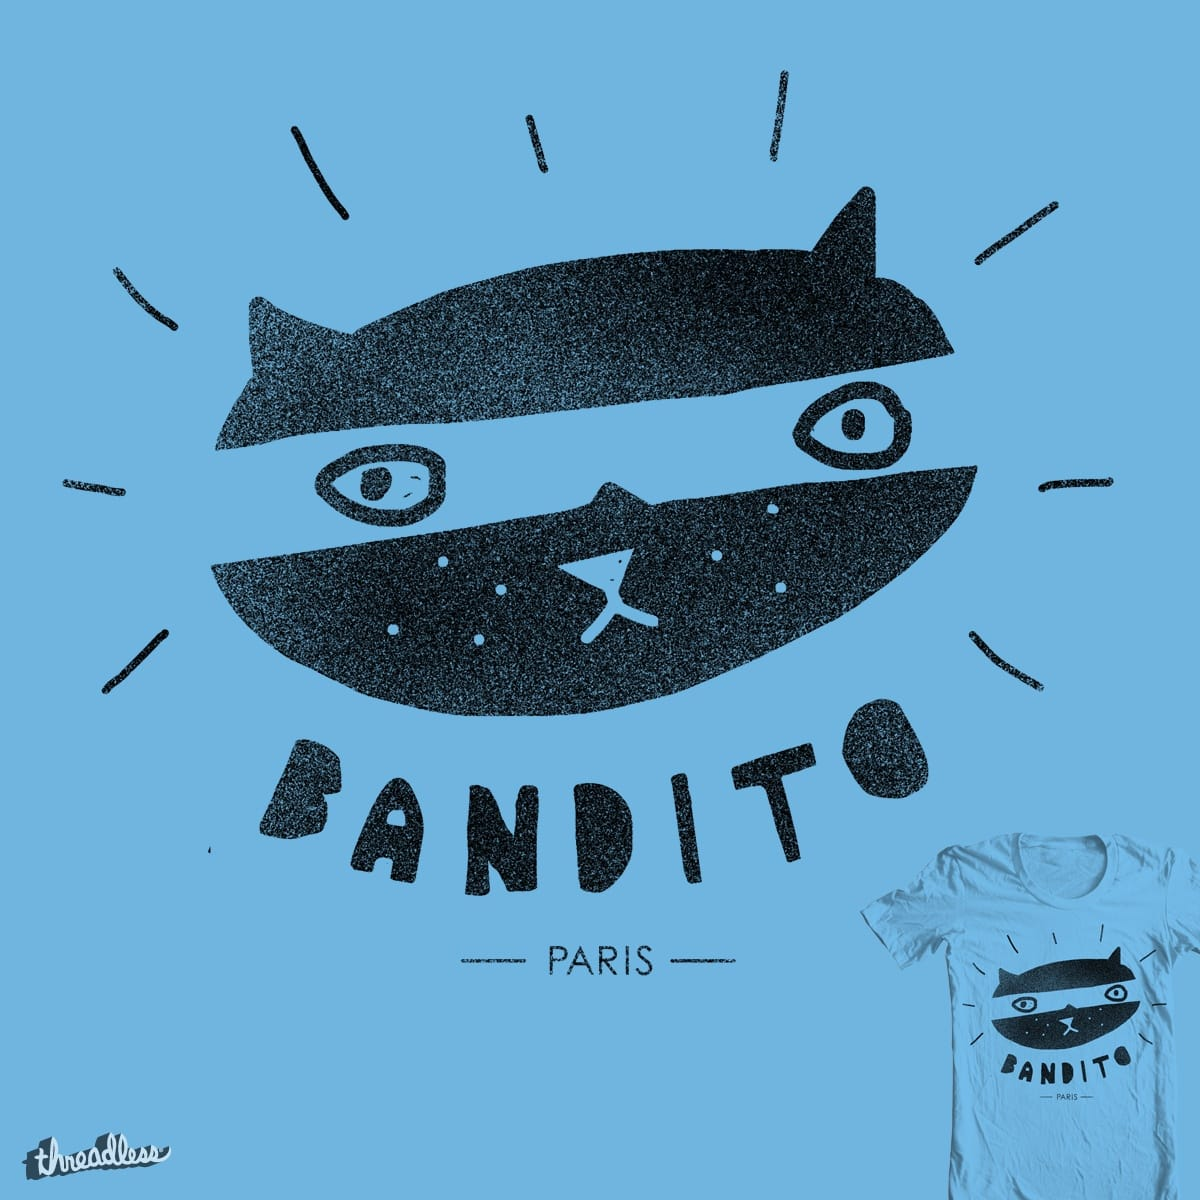 French Bandit by Farnell on Threadless